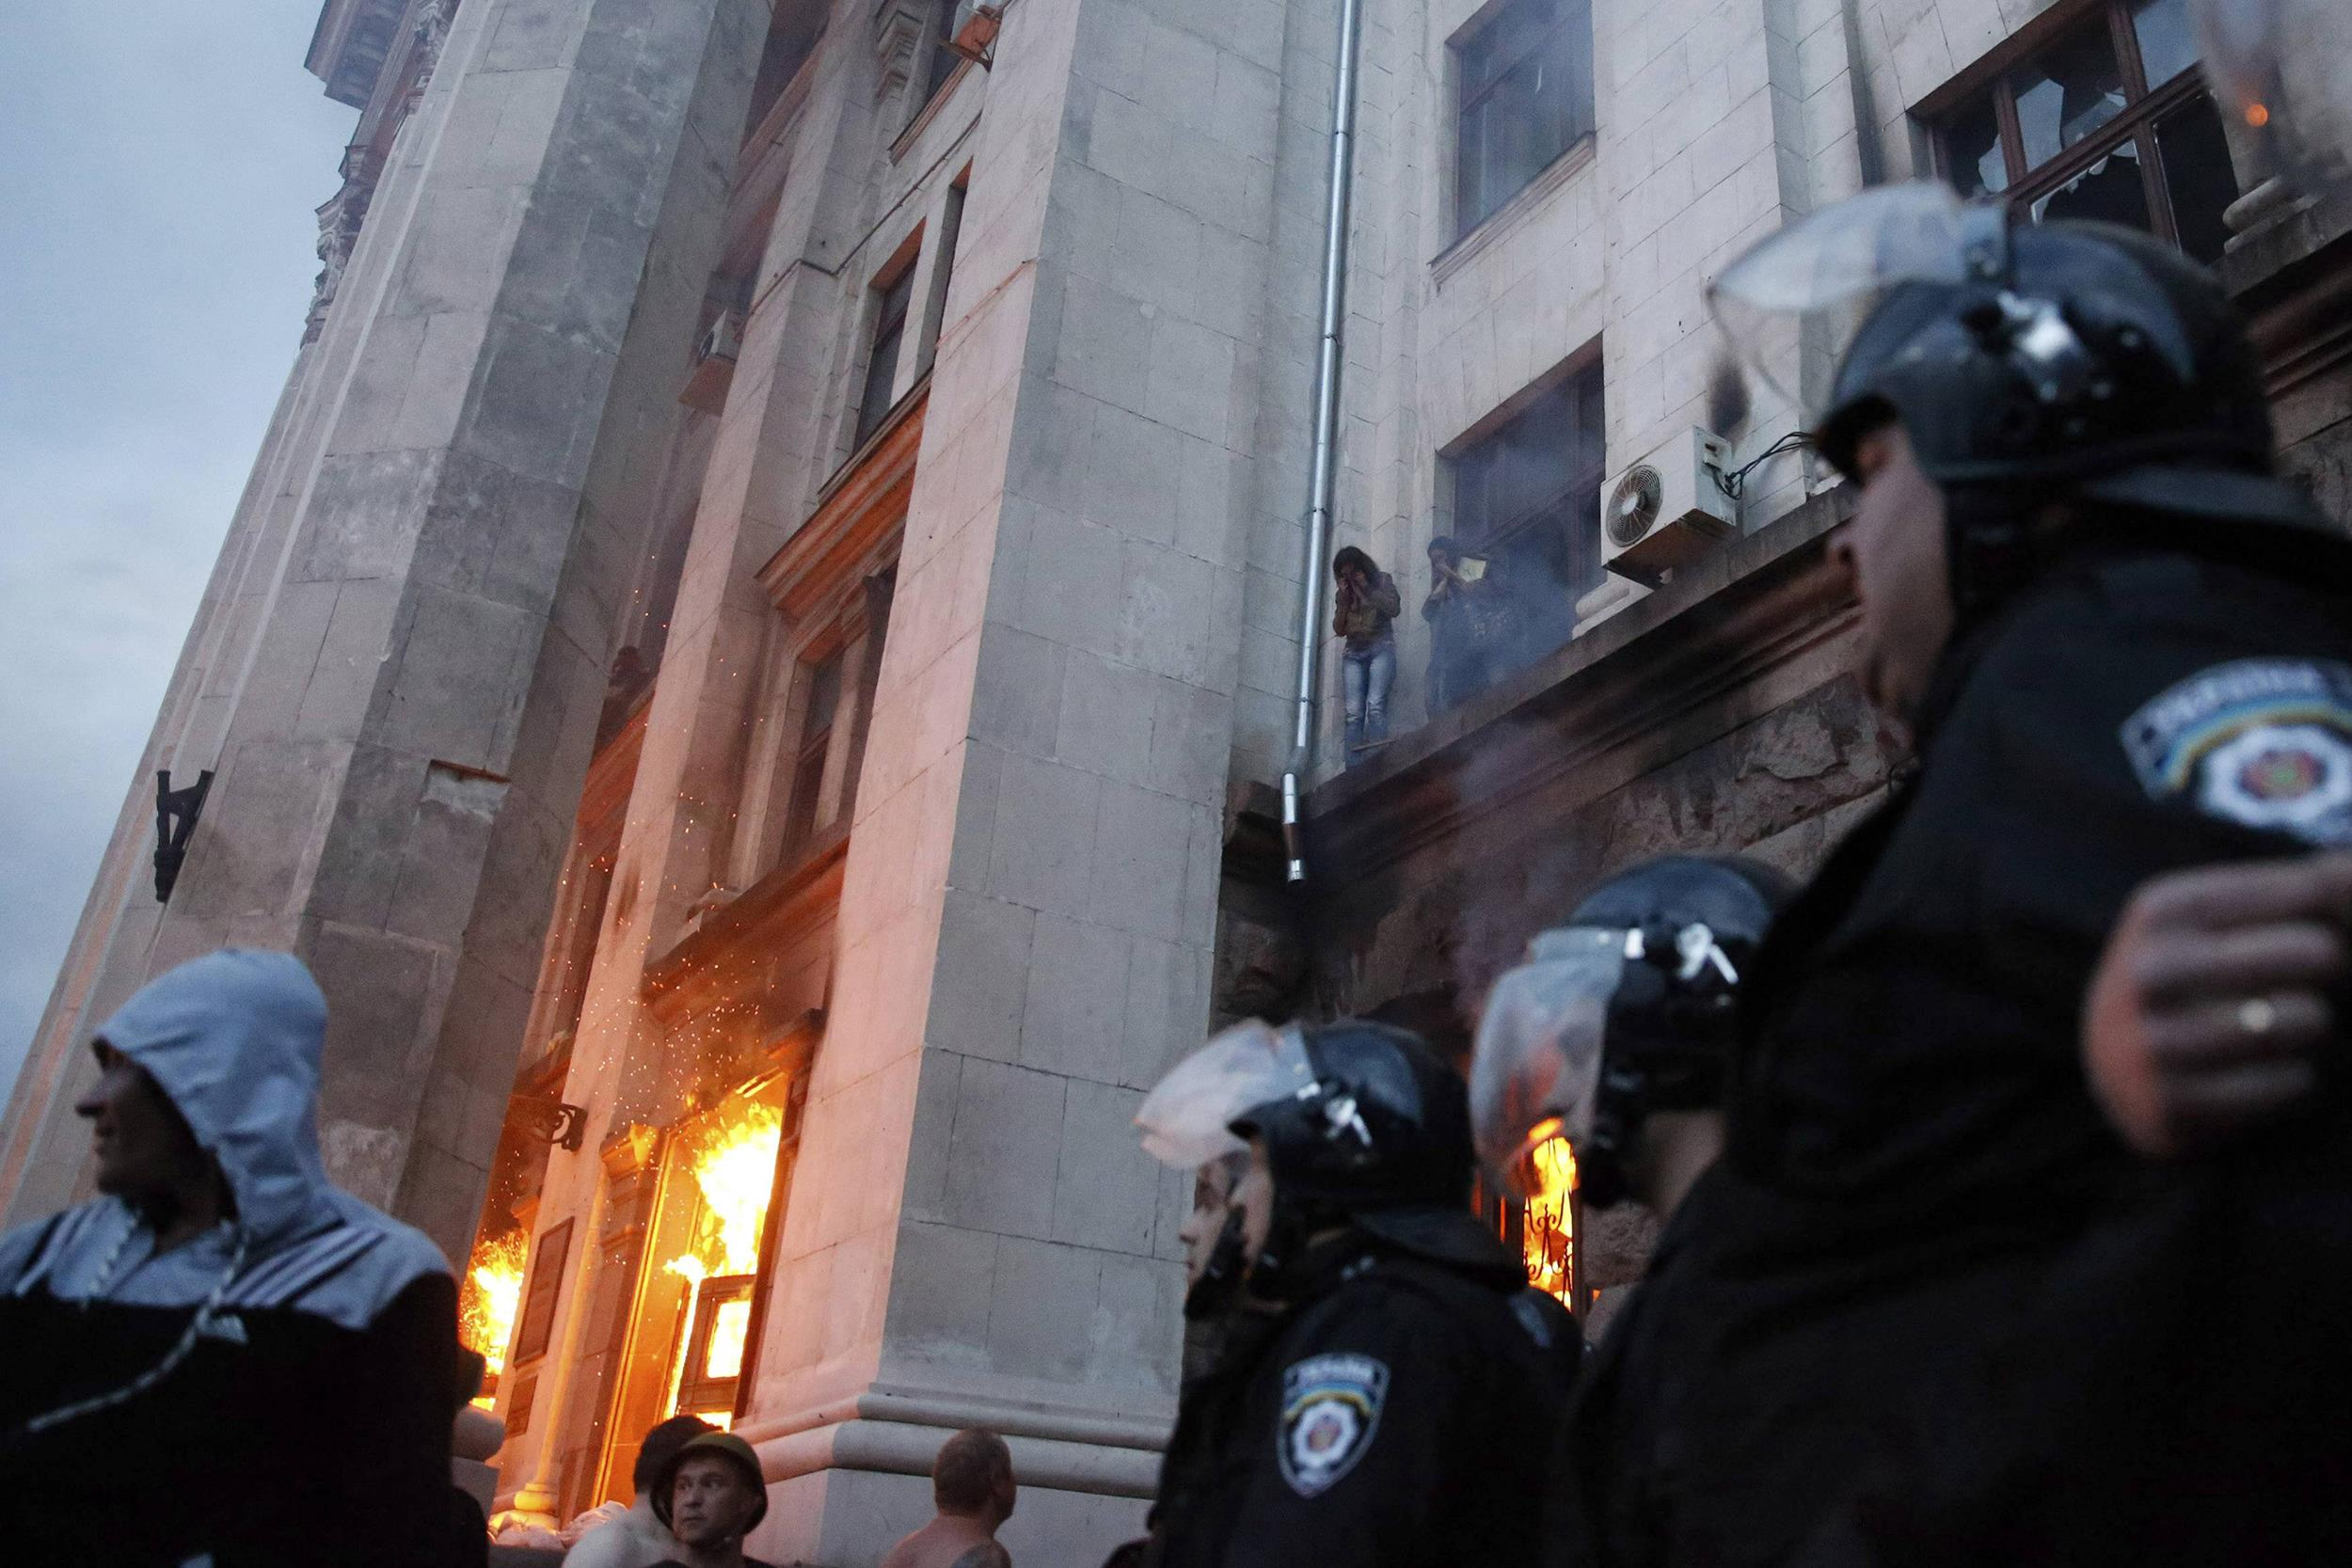 Image: People wait to be rescued on an upper storey ledge during a fire at the trade union building in Odessa